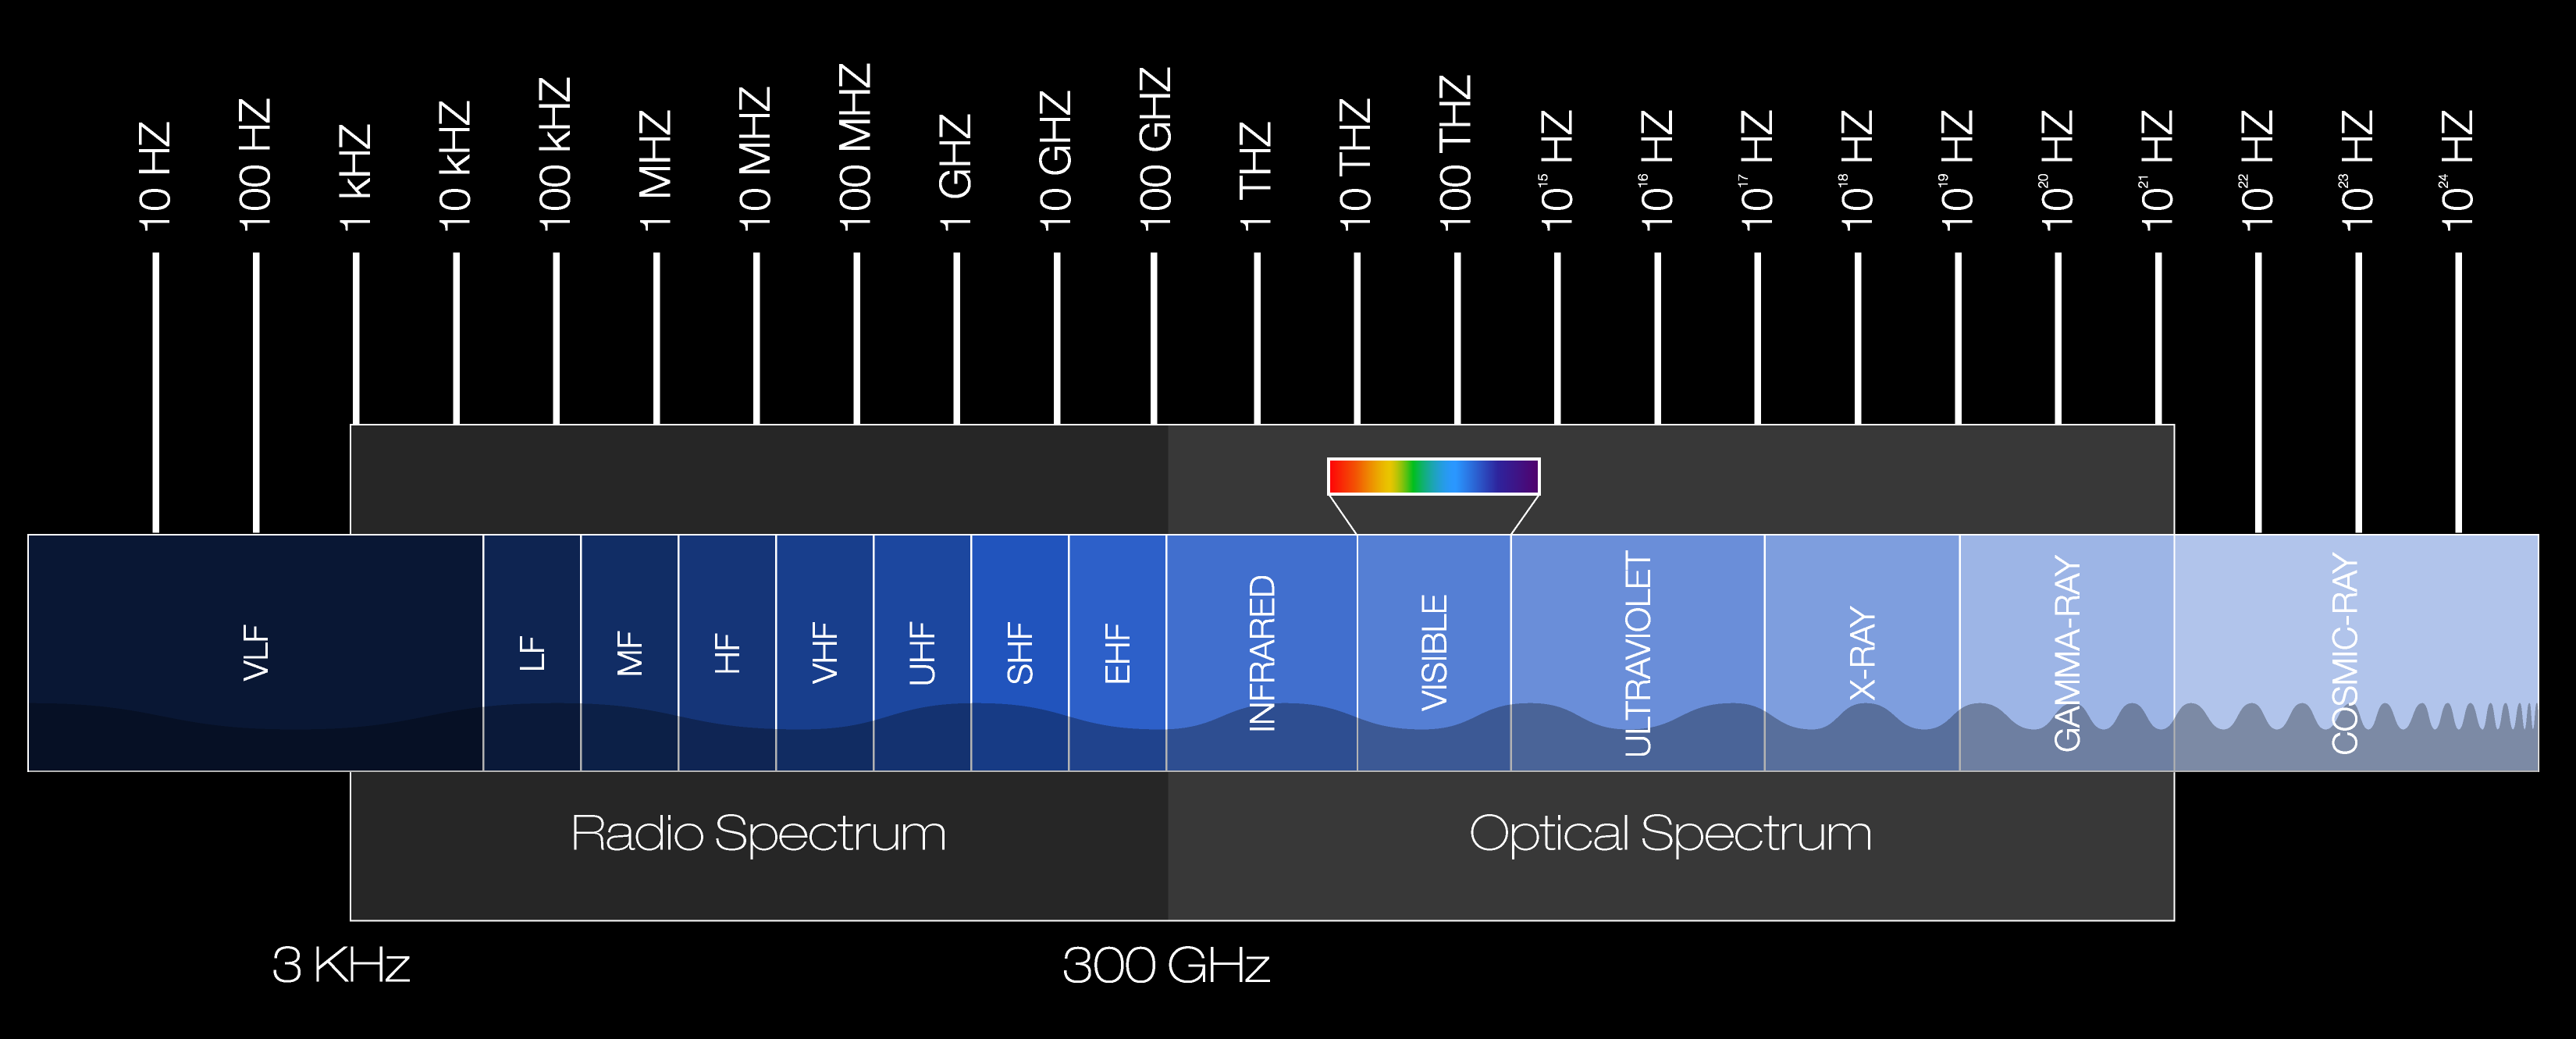 What Are The Spectrum Band Designators And Bandwidths Nasa